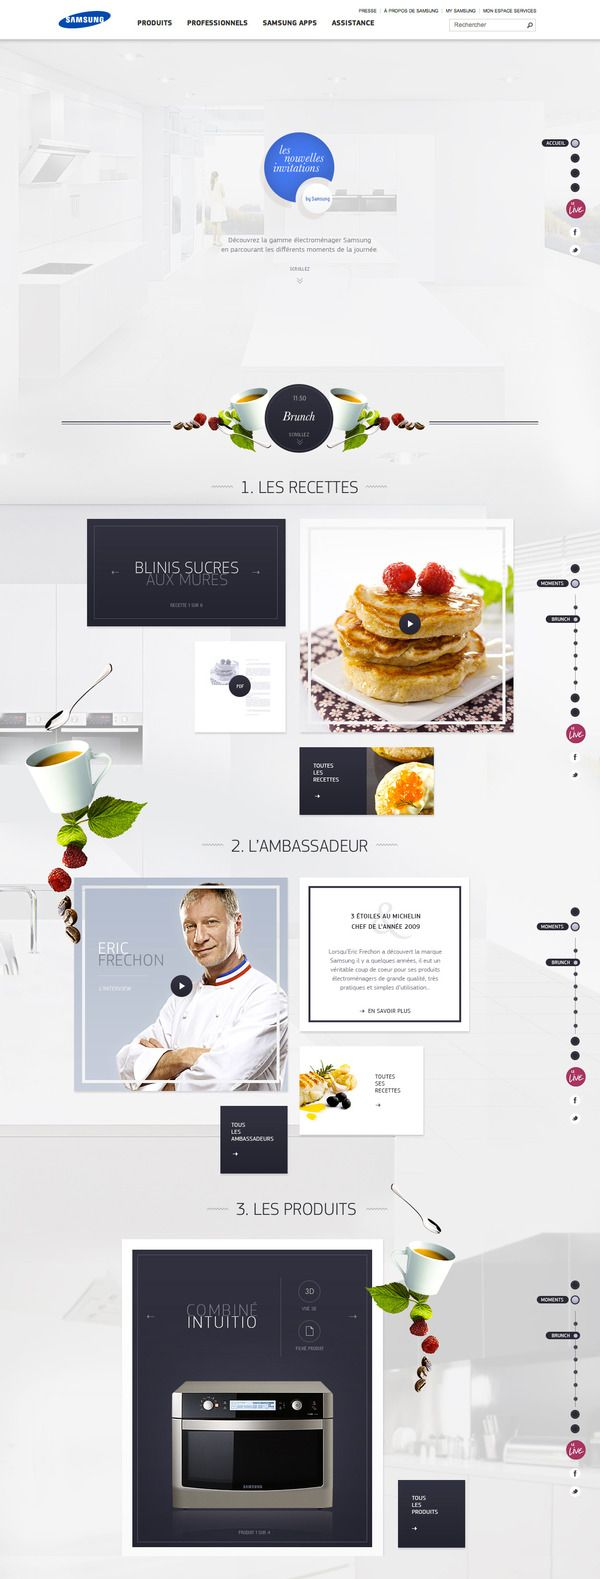 Nouvelles Invitations by Samsung on the Behance Network, designed by Yul